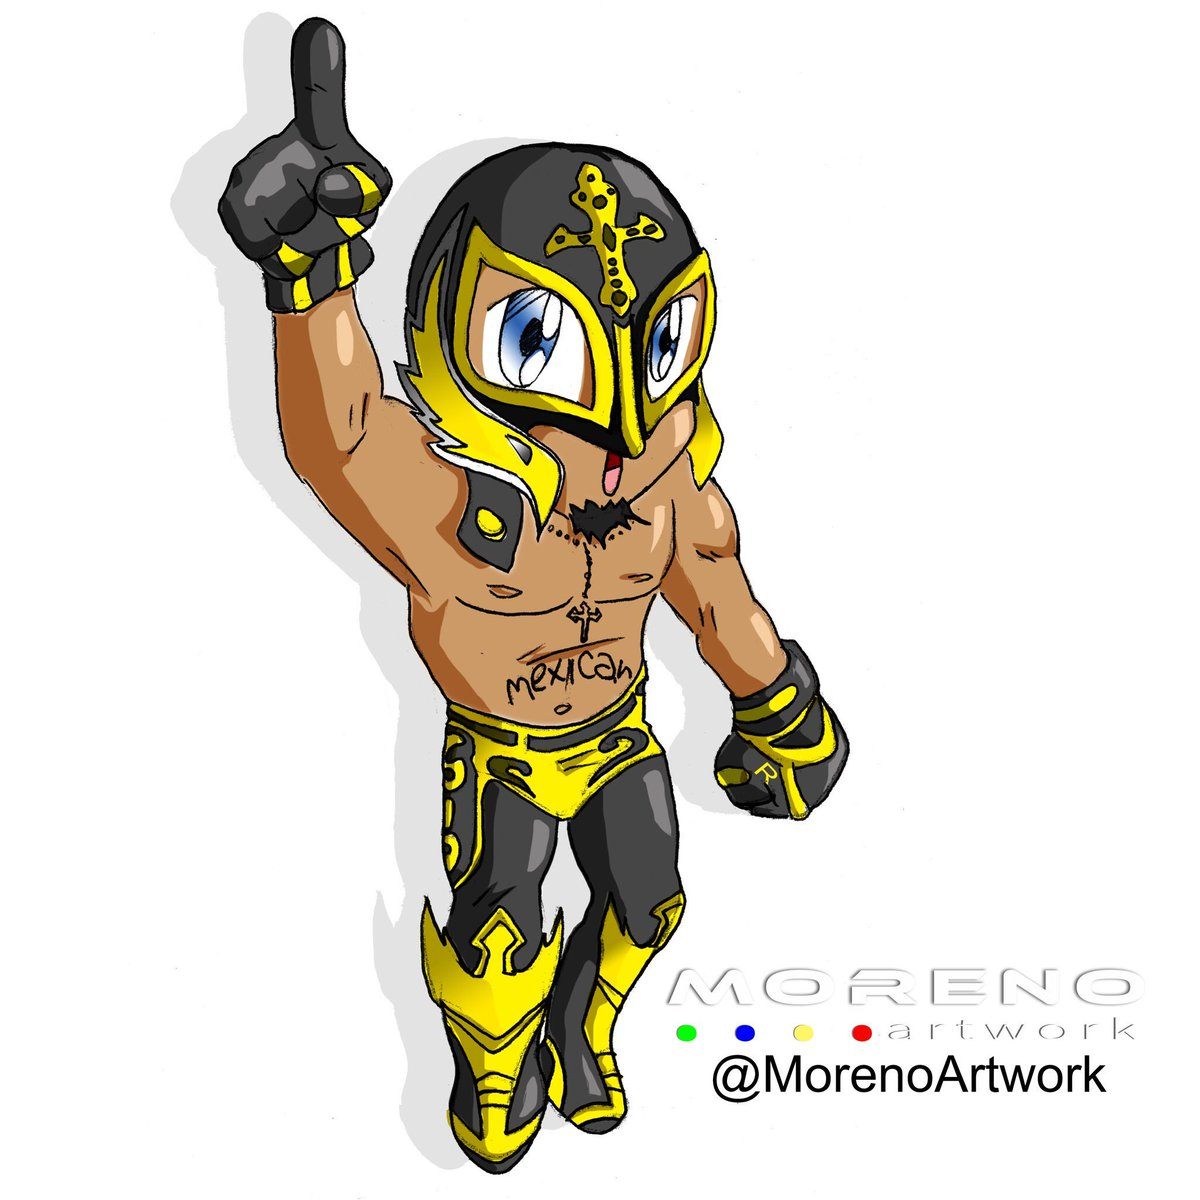 1200x1200 Moreno Artwork On Twitter My Hero @reymysterio Is Back